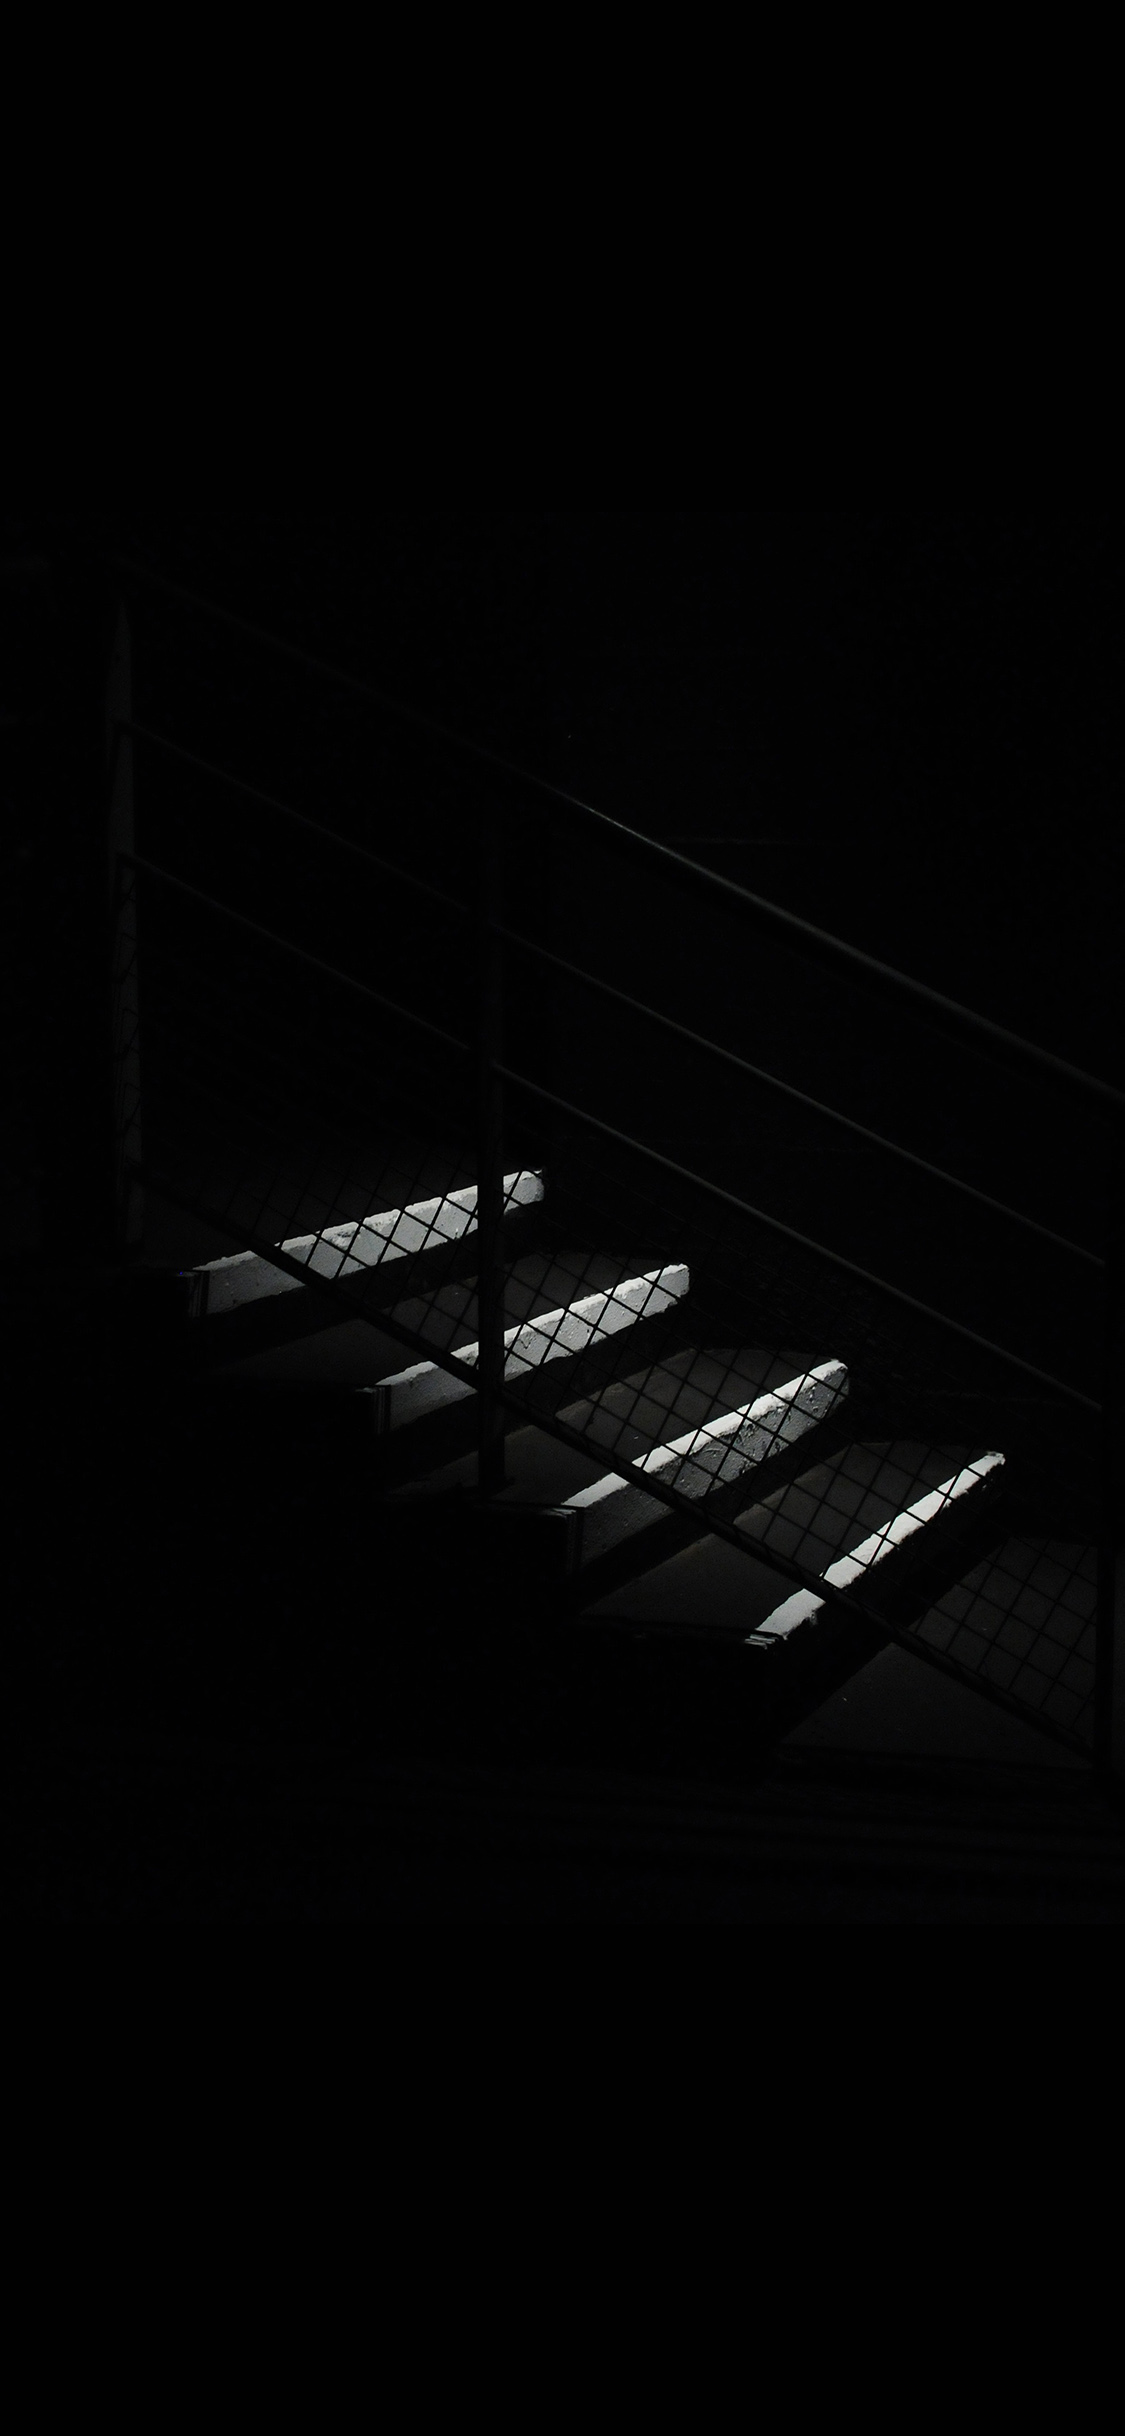 iPhoneXpapers.com-Apple-iPhone-wallpaper-nf68-dark-stairs-minimal-simple-city-bw